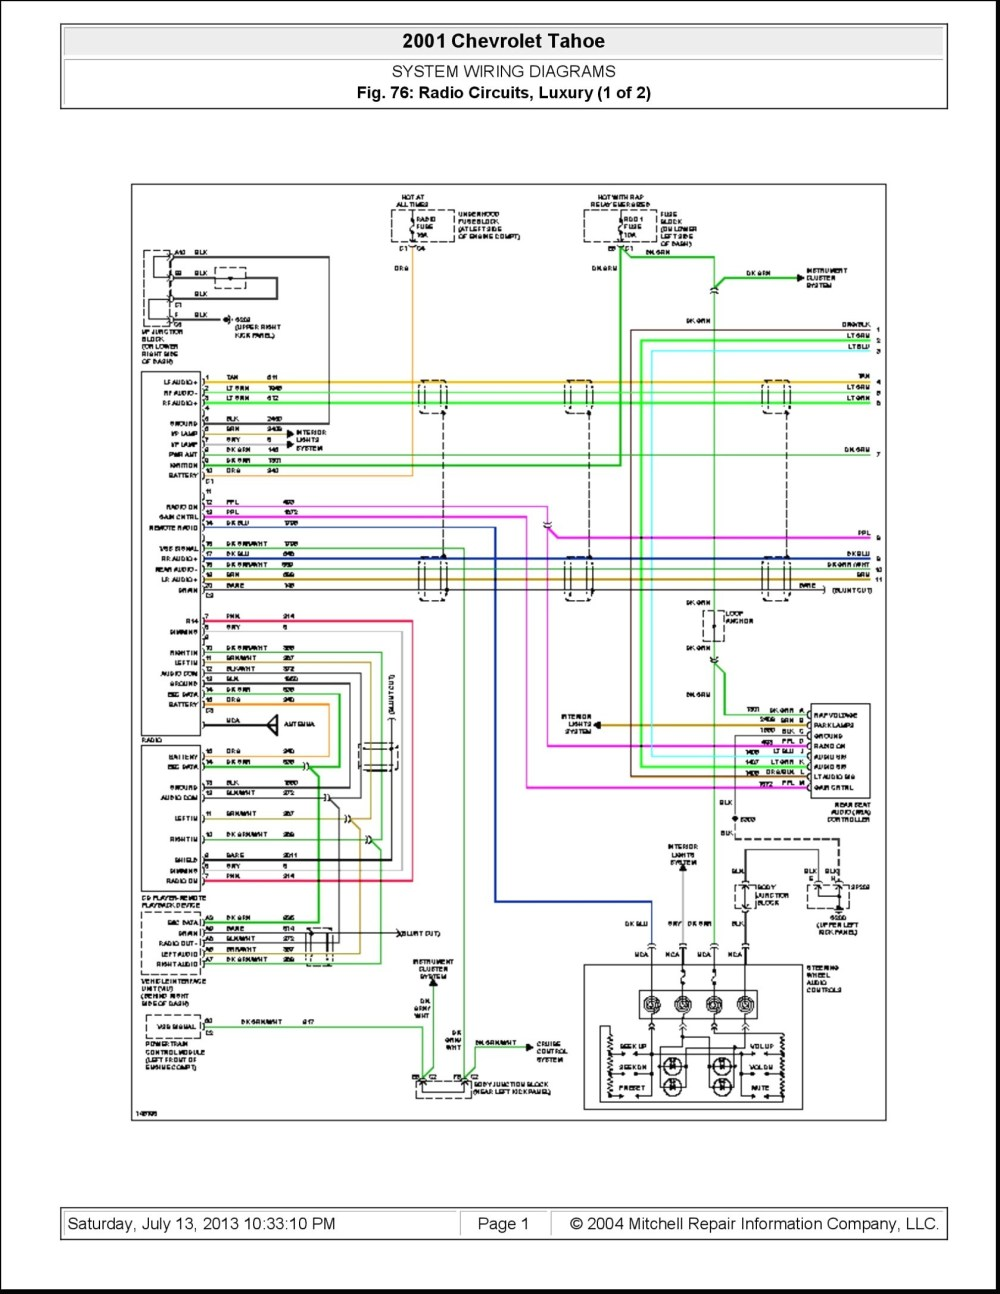 medium resolution of 1991 suburban fuse diagram wiring diagram mega1991 suburban fuse diagram wiring diagram new 1991 gmc suburban